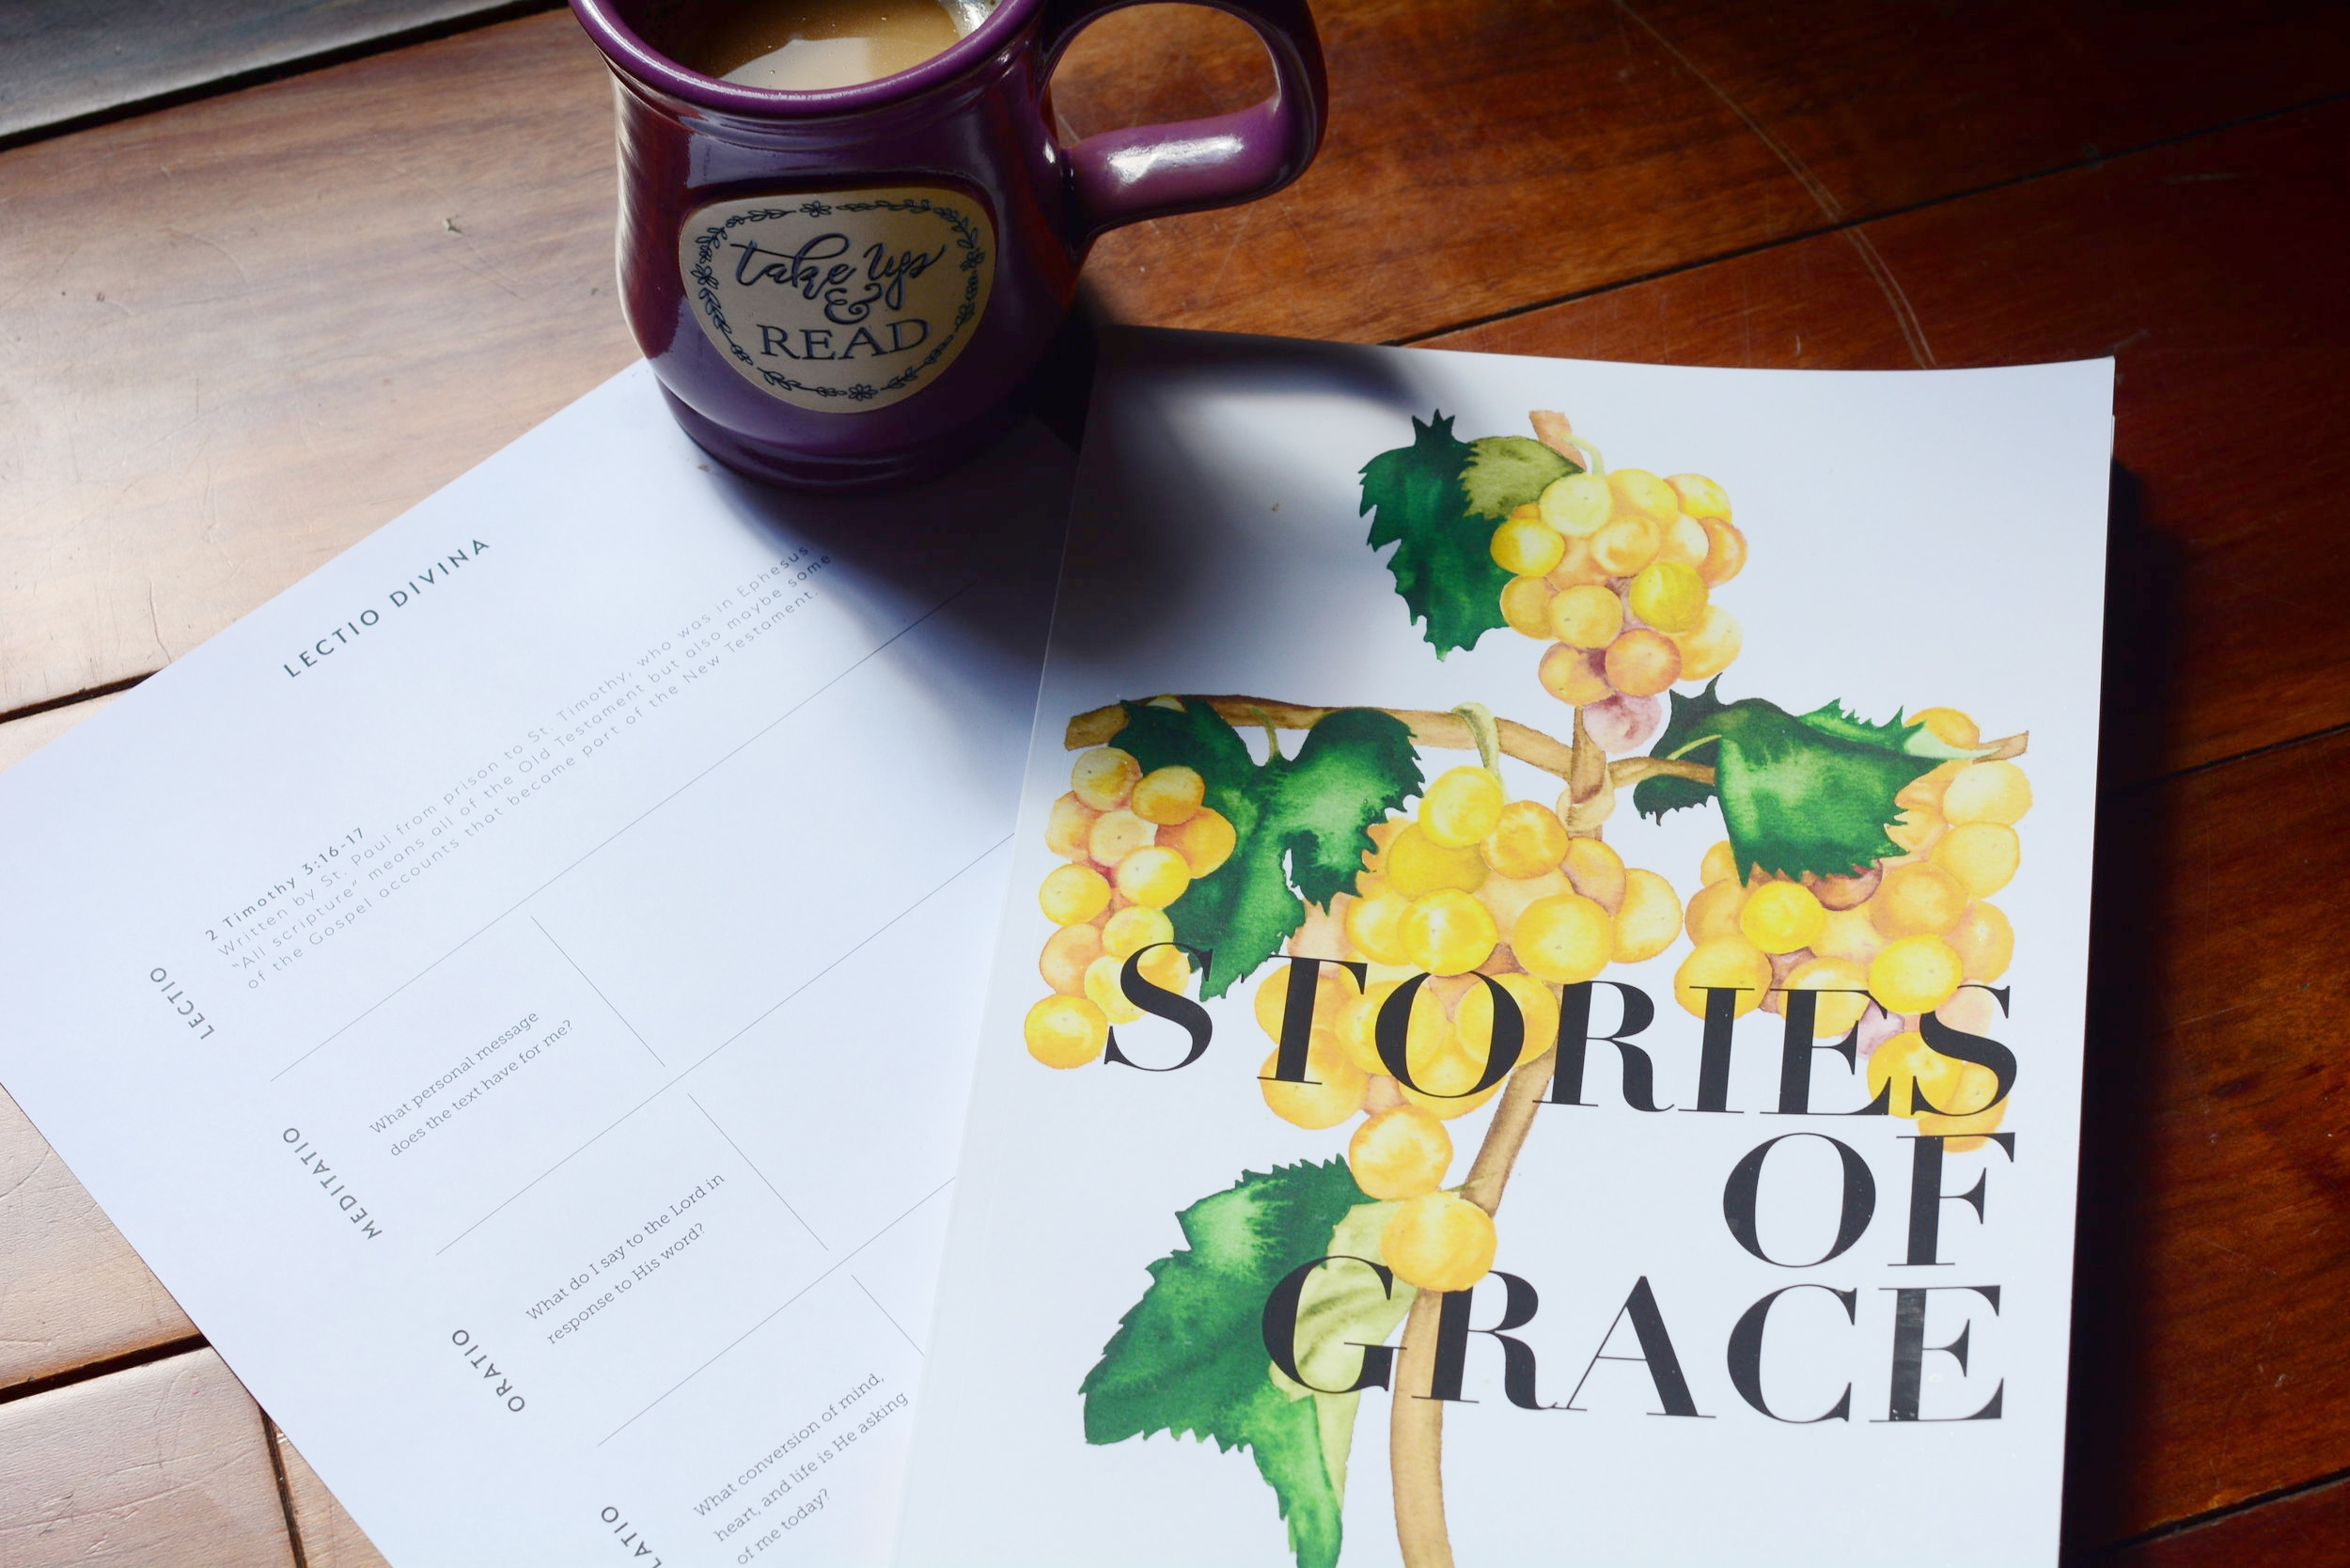 Gather a Group for Stories of Grace - This is a study of the parables Jesus told, complete with tools to help you have ears to hear. Along the way, we've provided meditation essays, journaling prompts, space for your notes and drawings, beautiful calligraphy pages, and prayers we will pray with you.